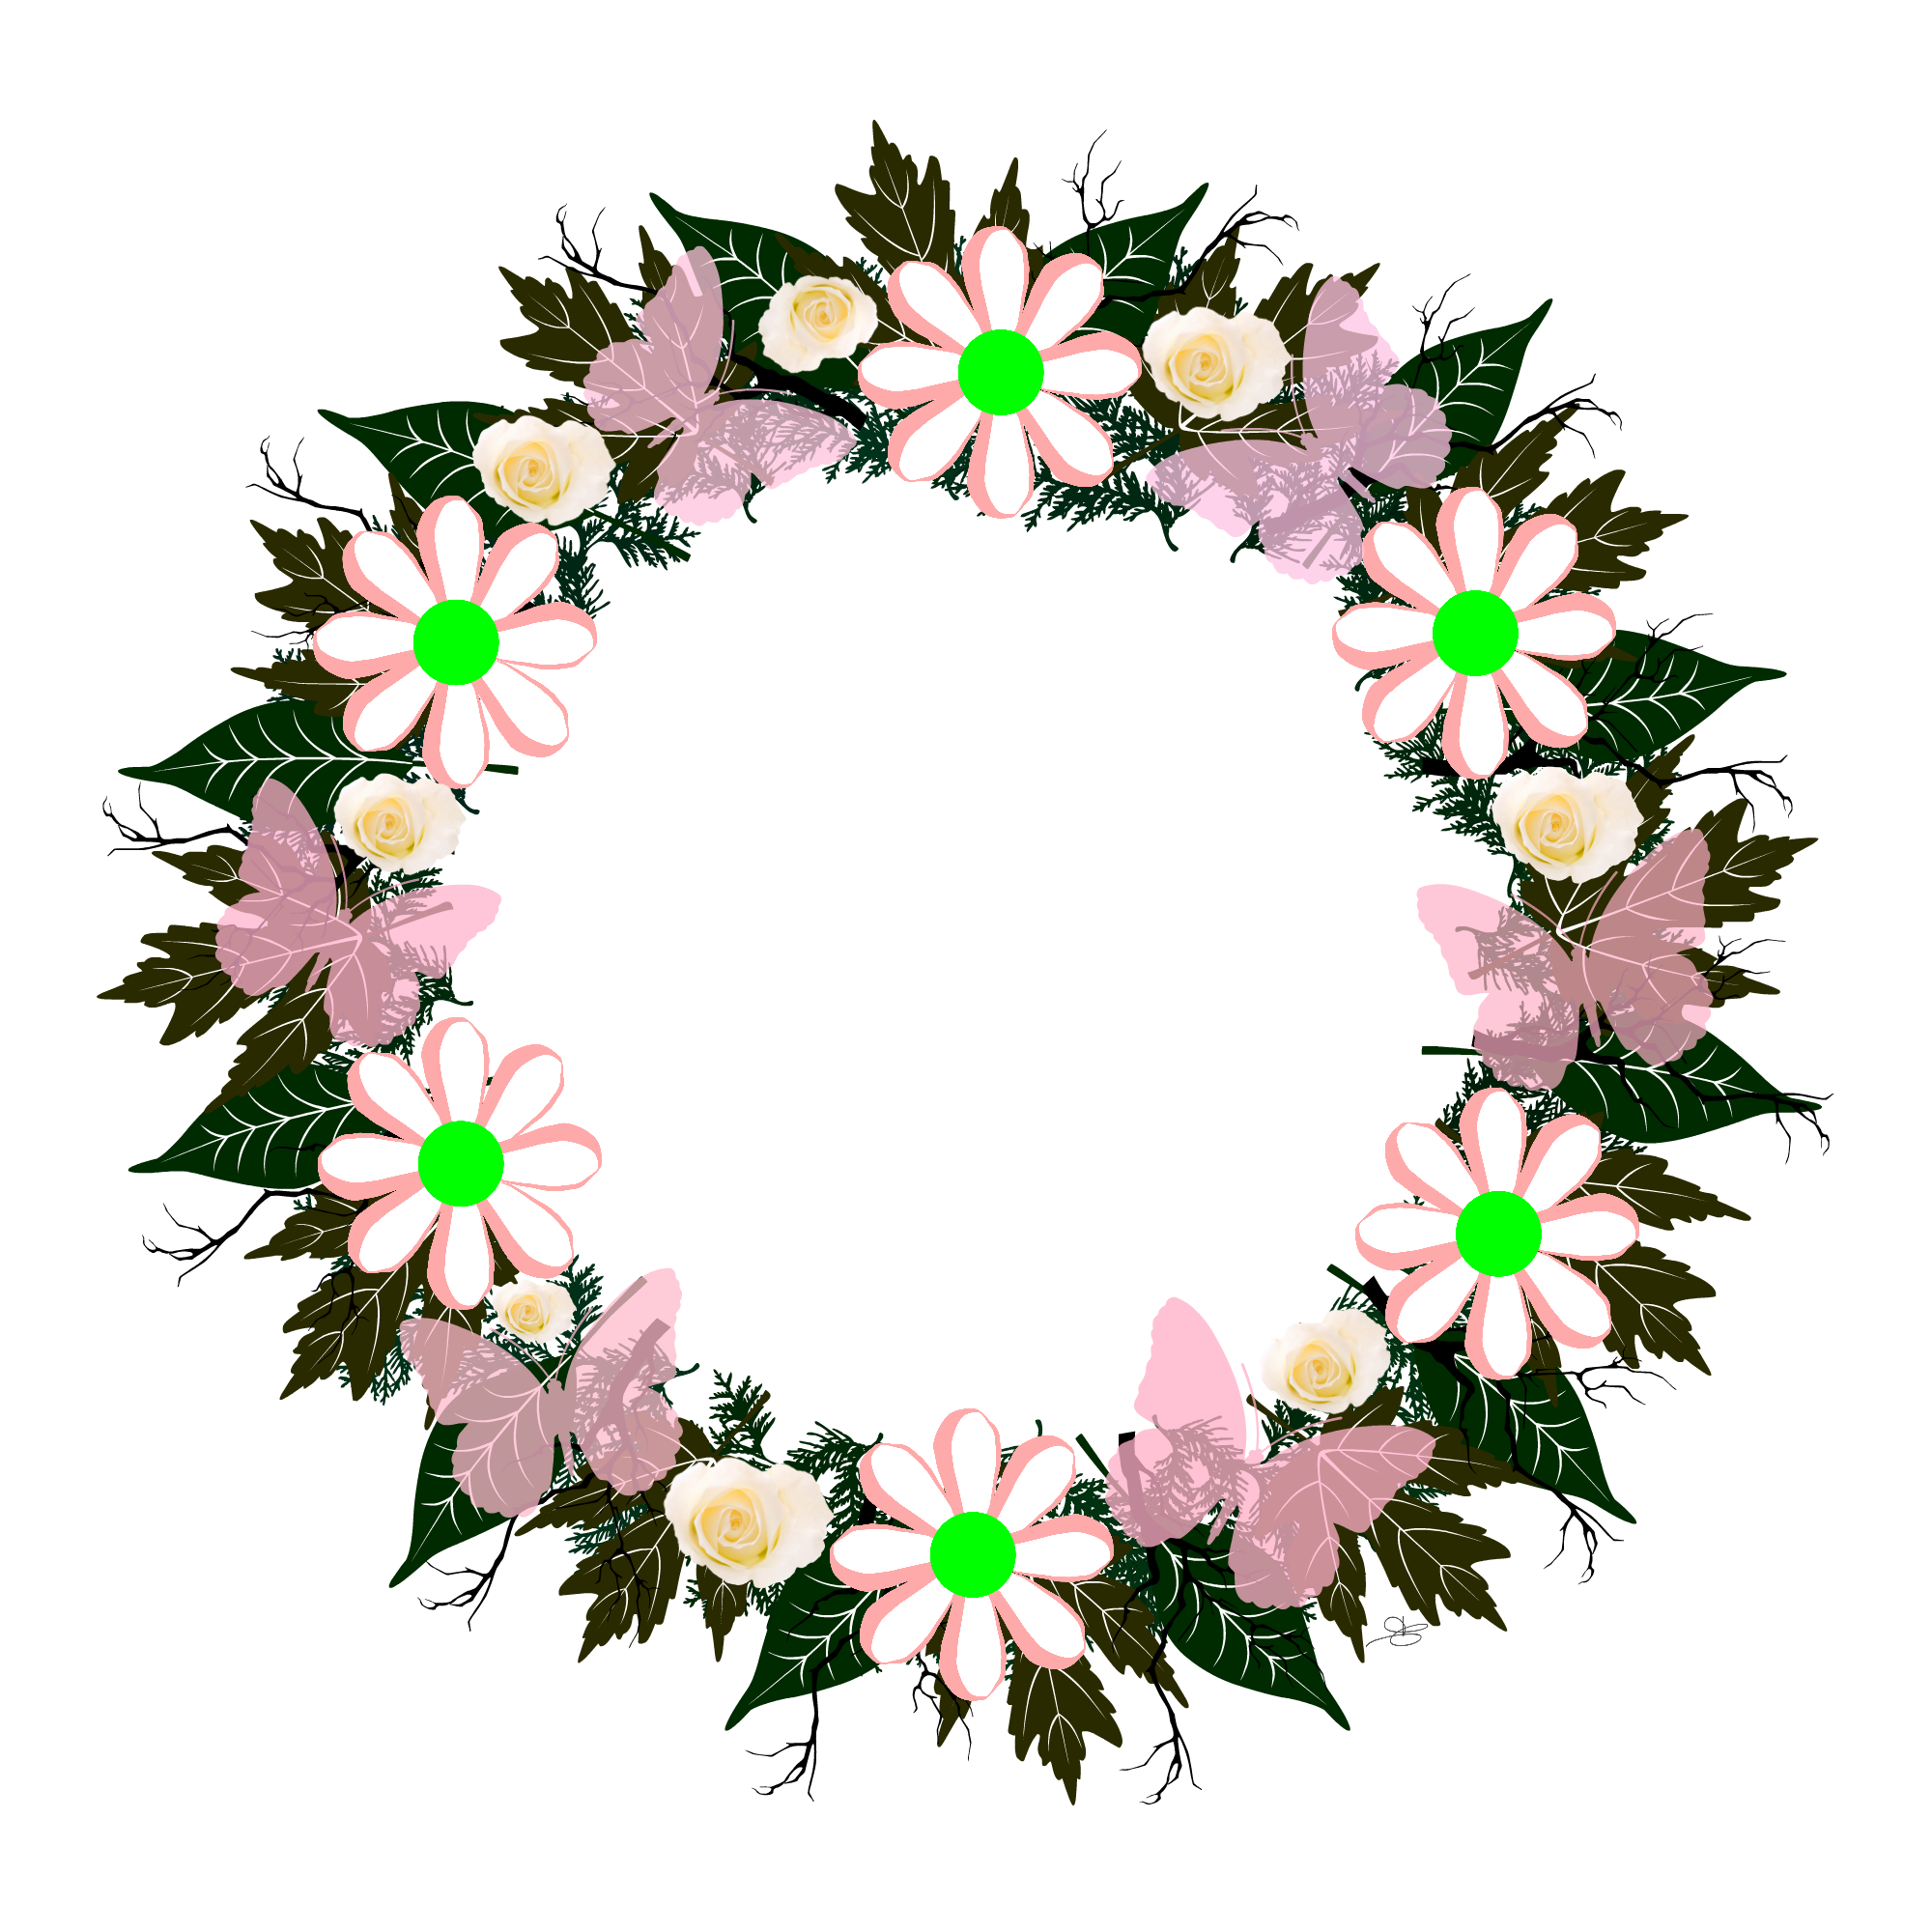 Grape clipart wreath. Butterflow collection collections pinterest